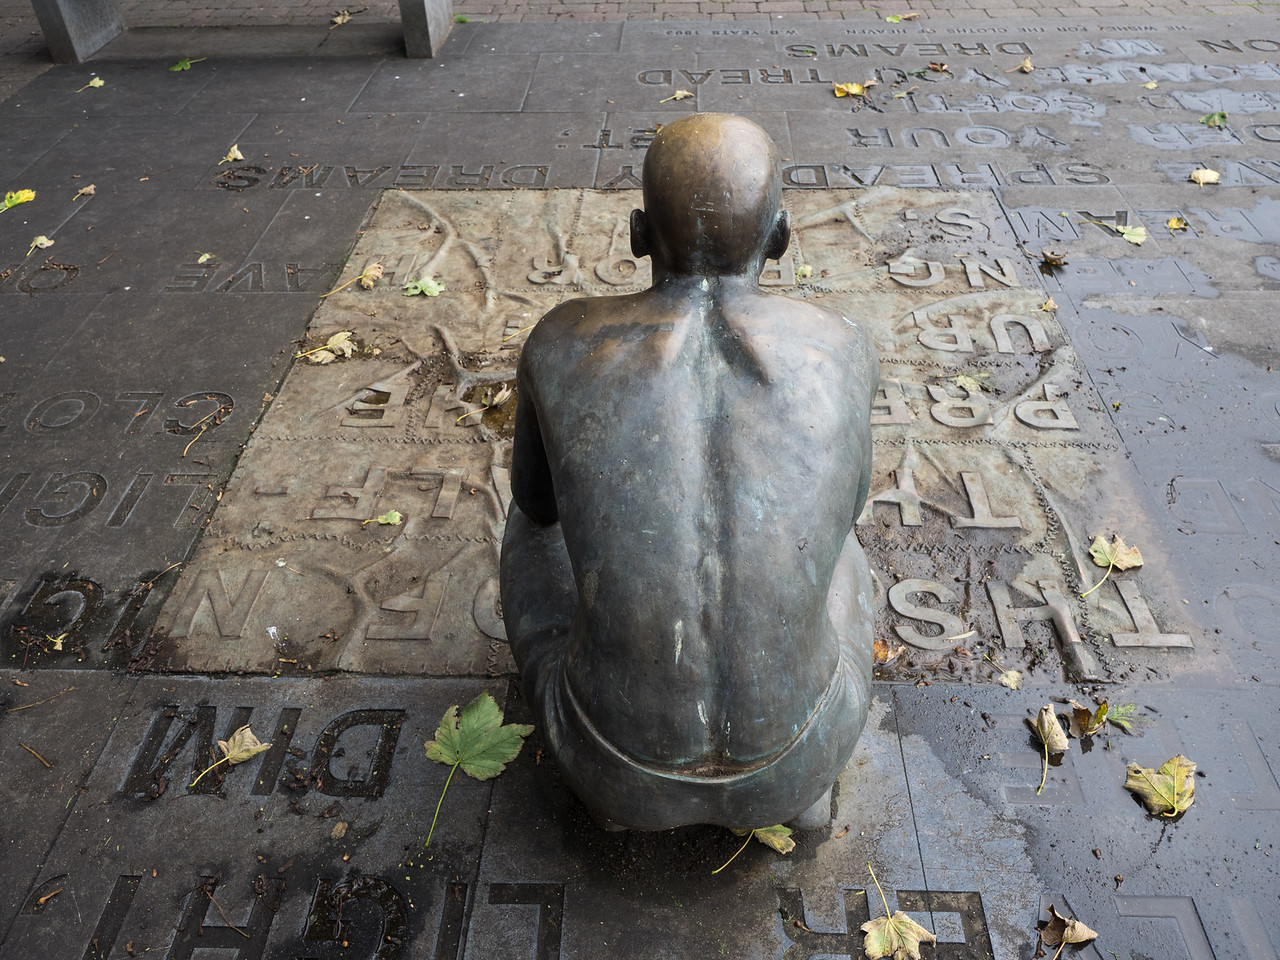 An odd statue at the Yeats memorial, looks like he's been caught short.